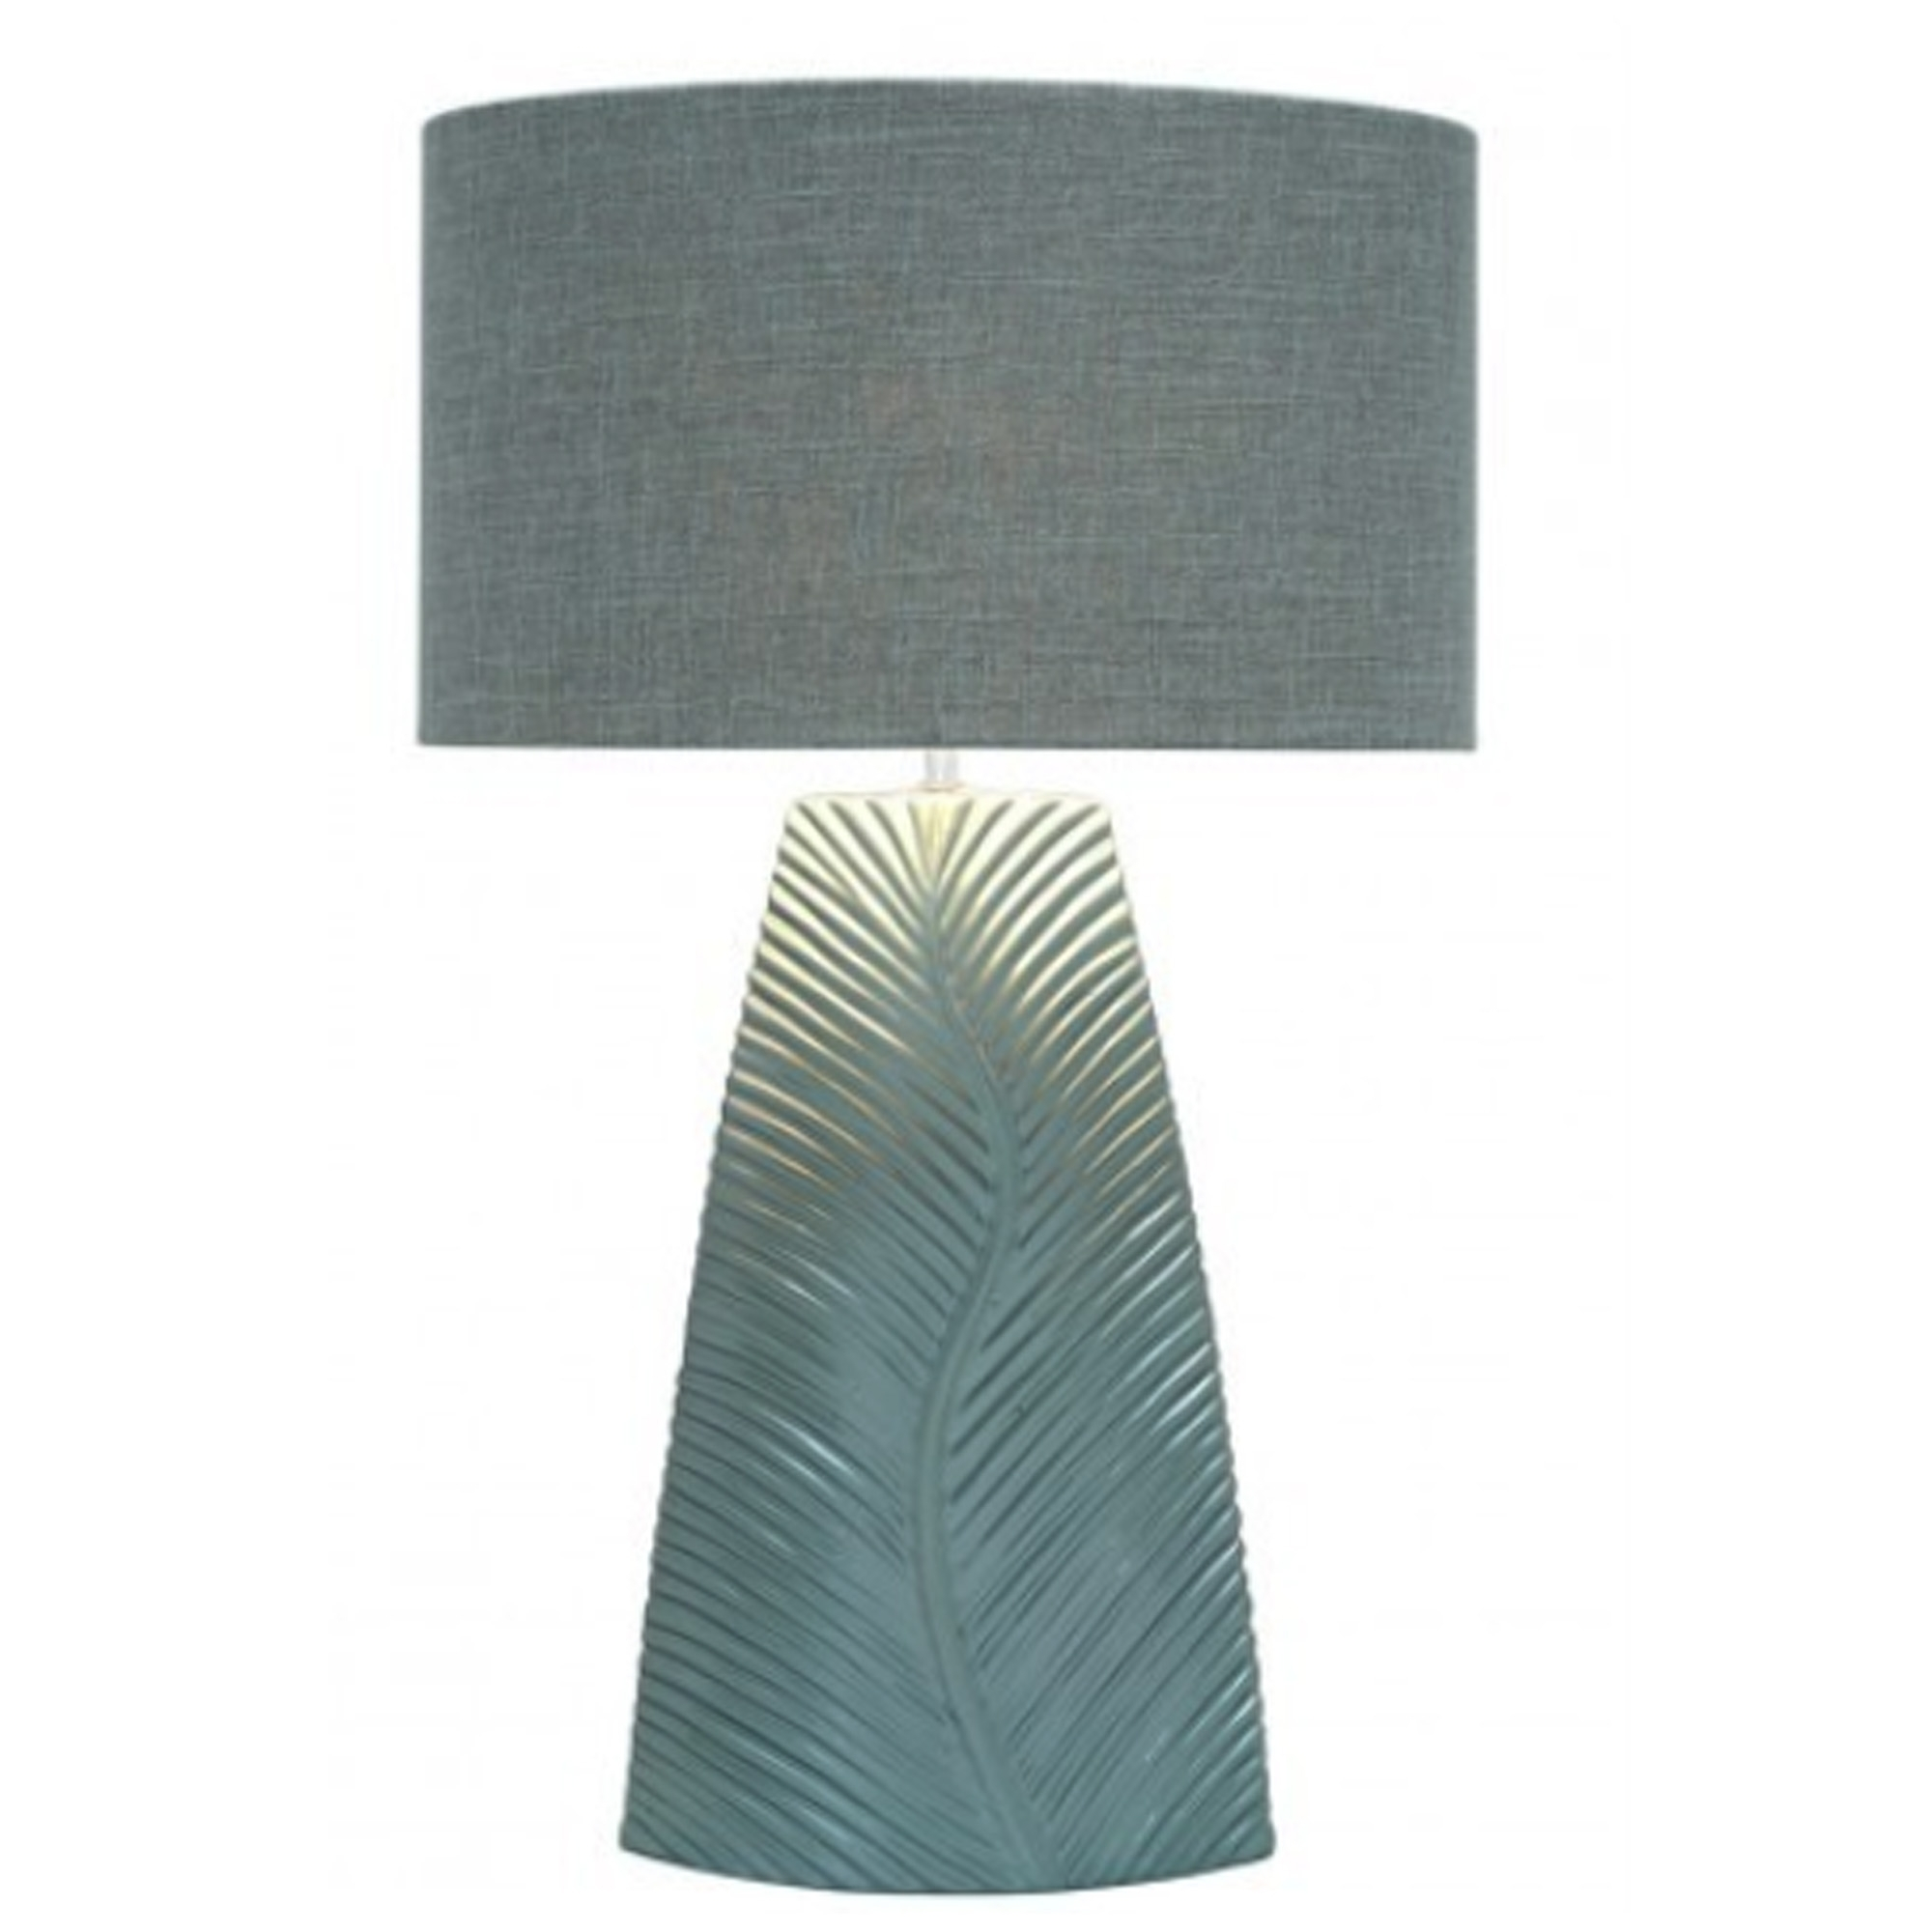 Duck Egg Blue Leaf Modern Table Lamp Table Lamps Home Accessories